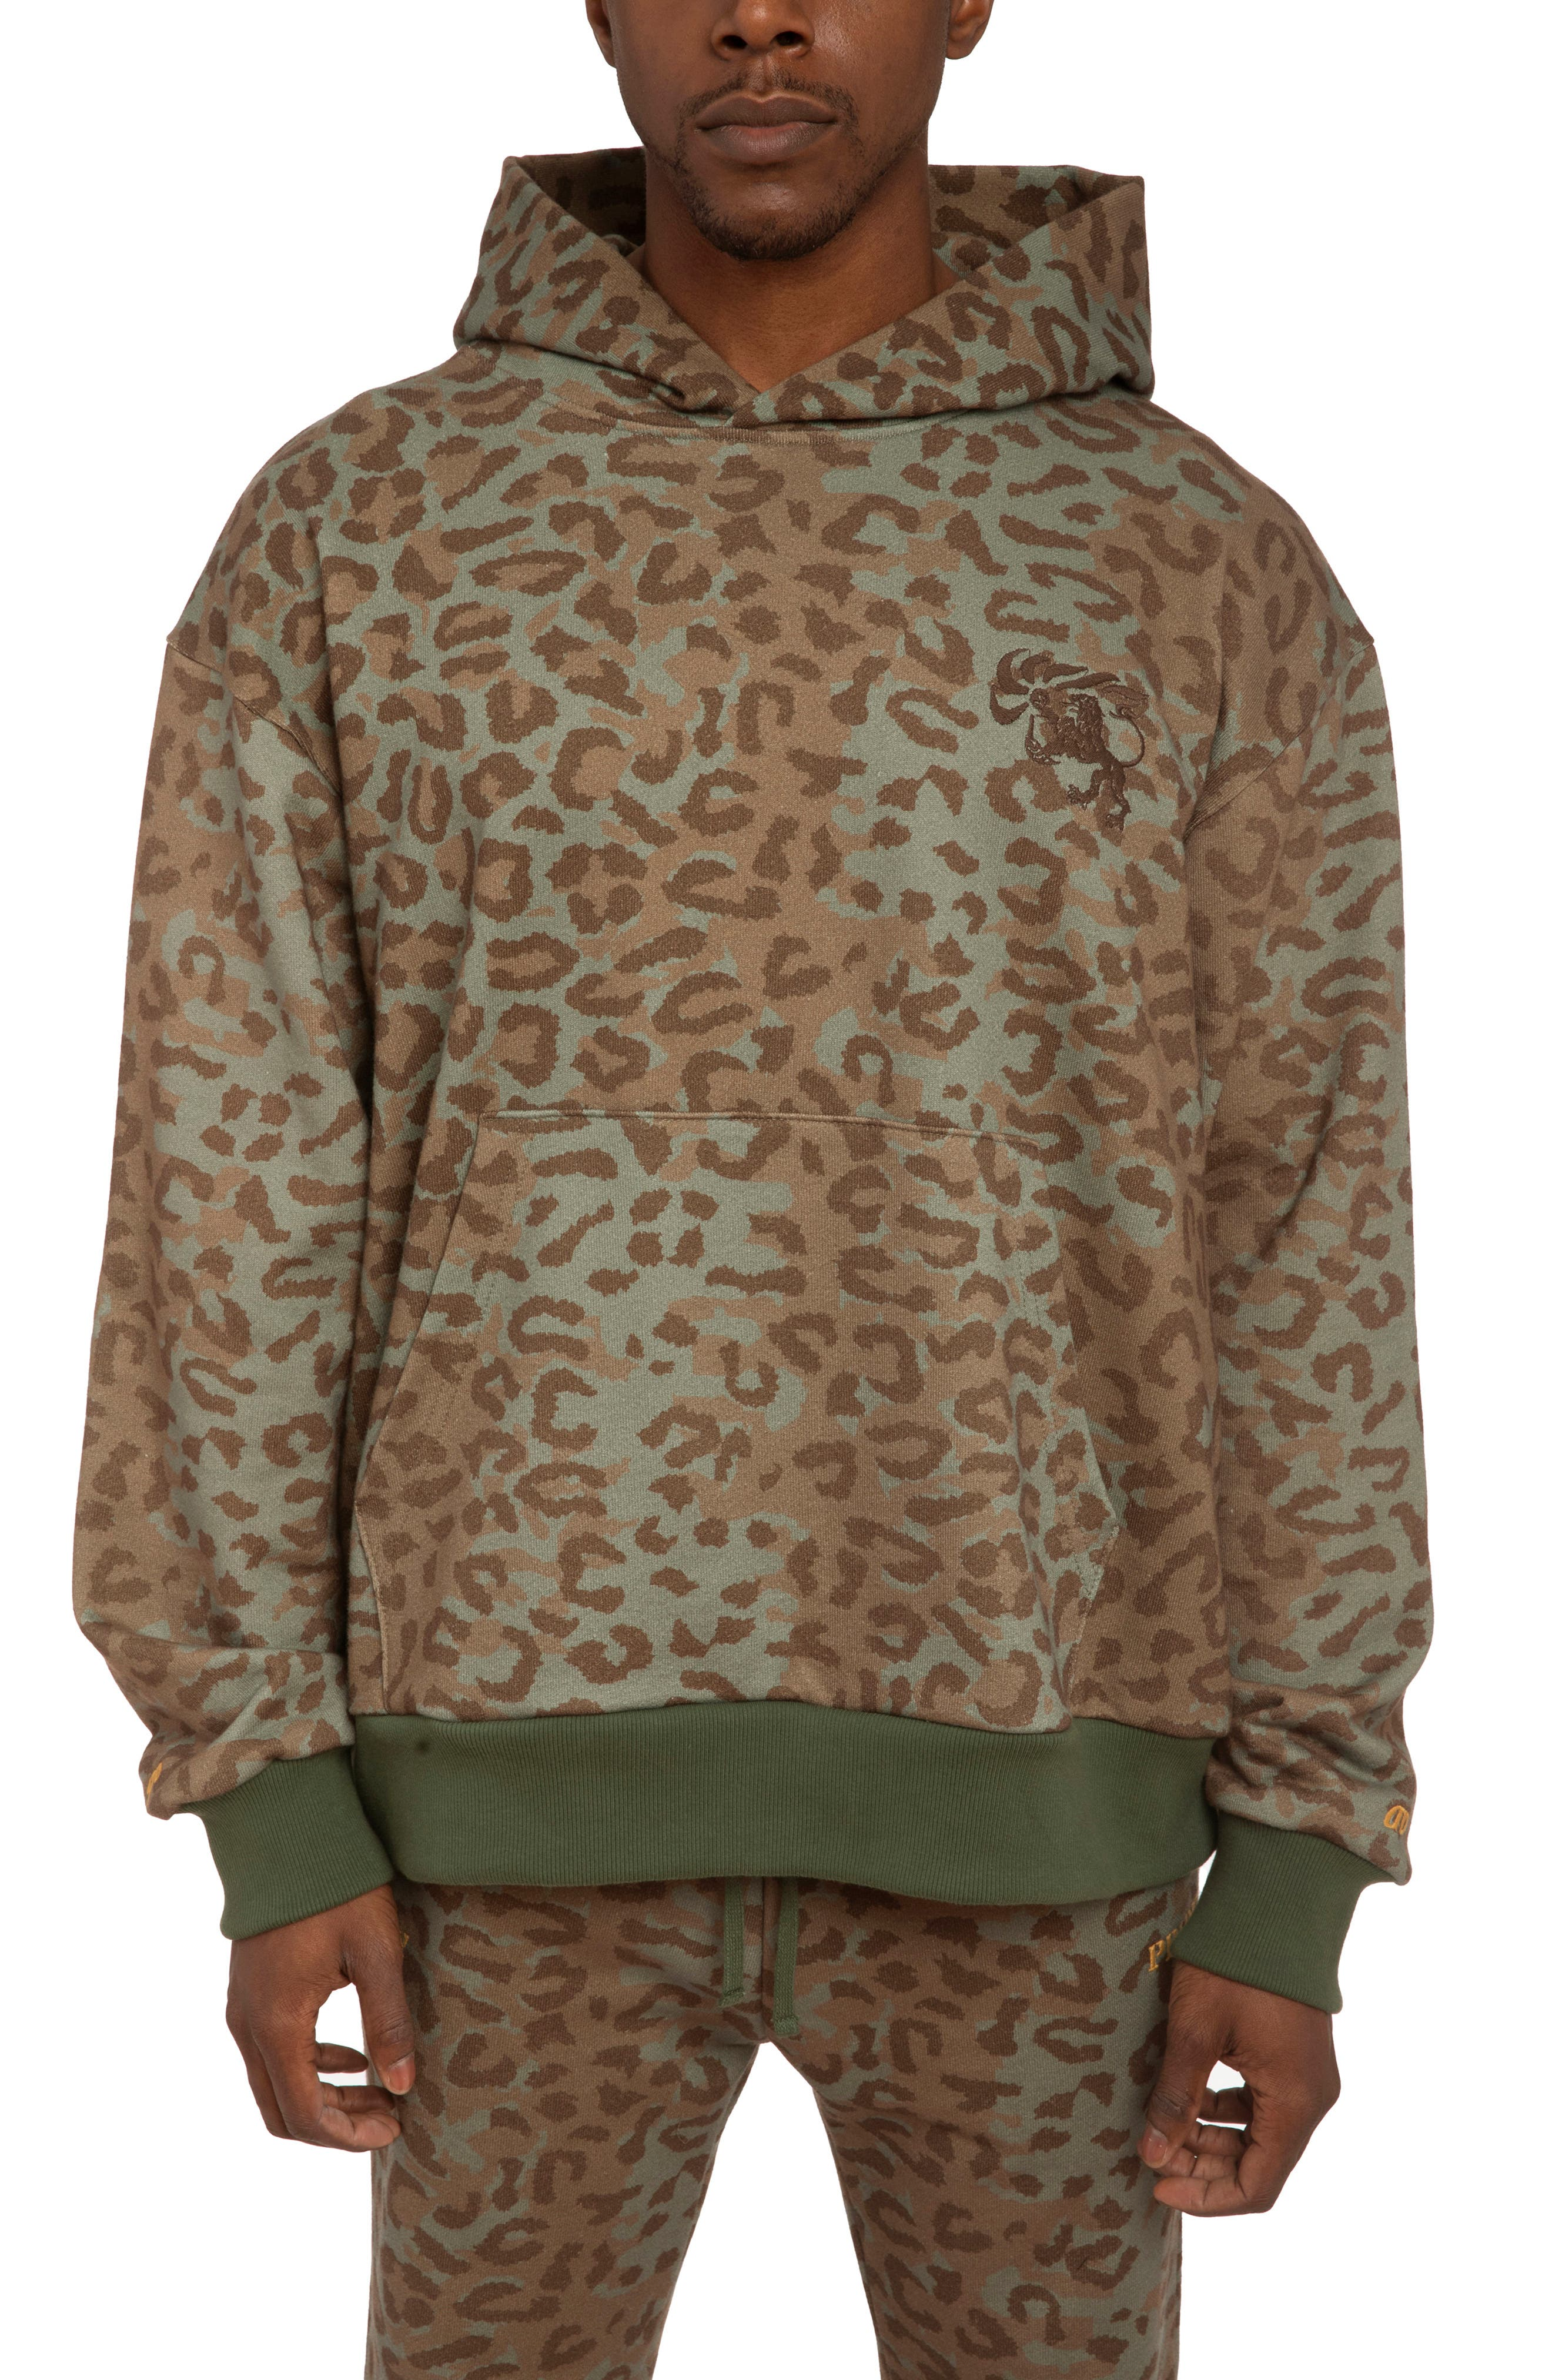 Men's Hstry By Nas X Coming 2 America Unity & Pride Leopard French Terry Hoodie